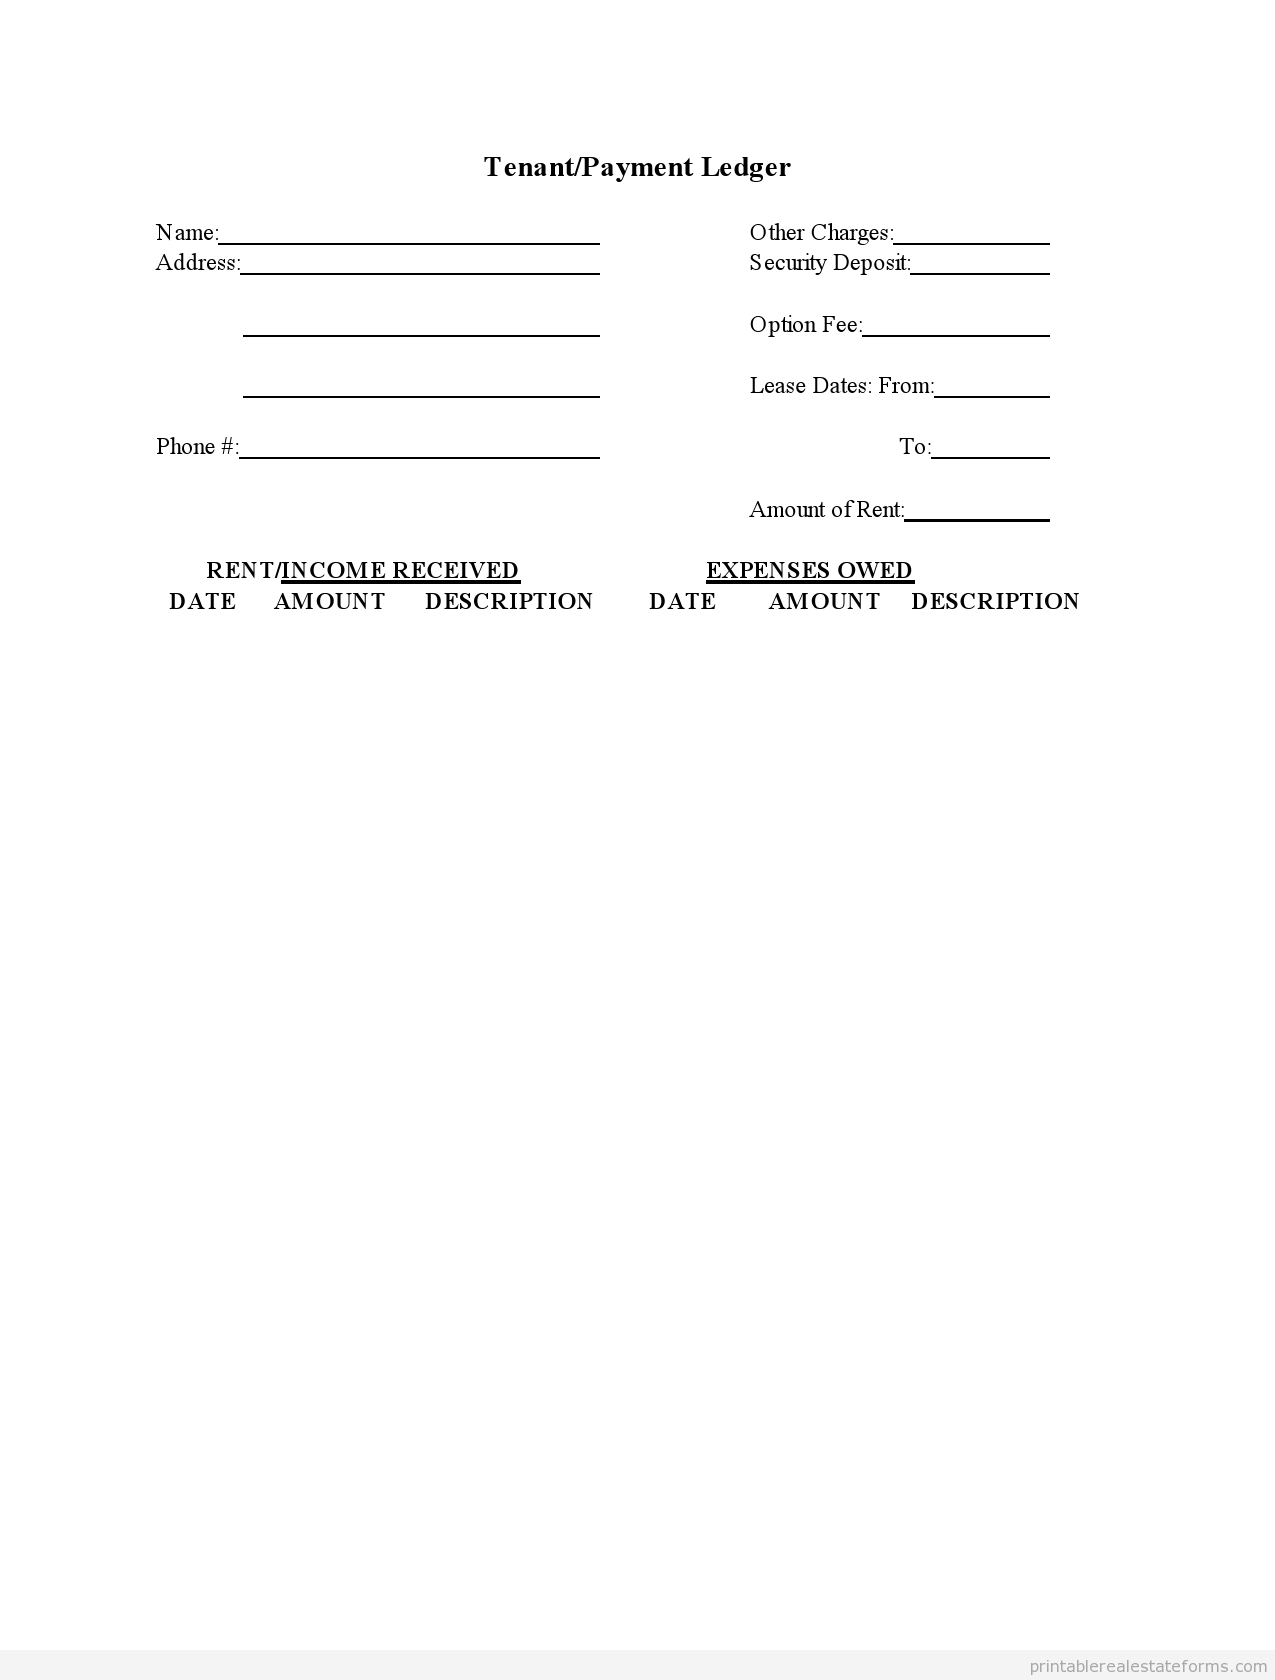 Free Printable Rental Ledger Template Form (Sample Pdf) - Free Printable Rent Ledger